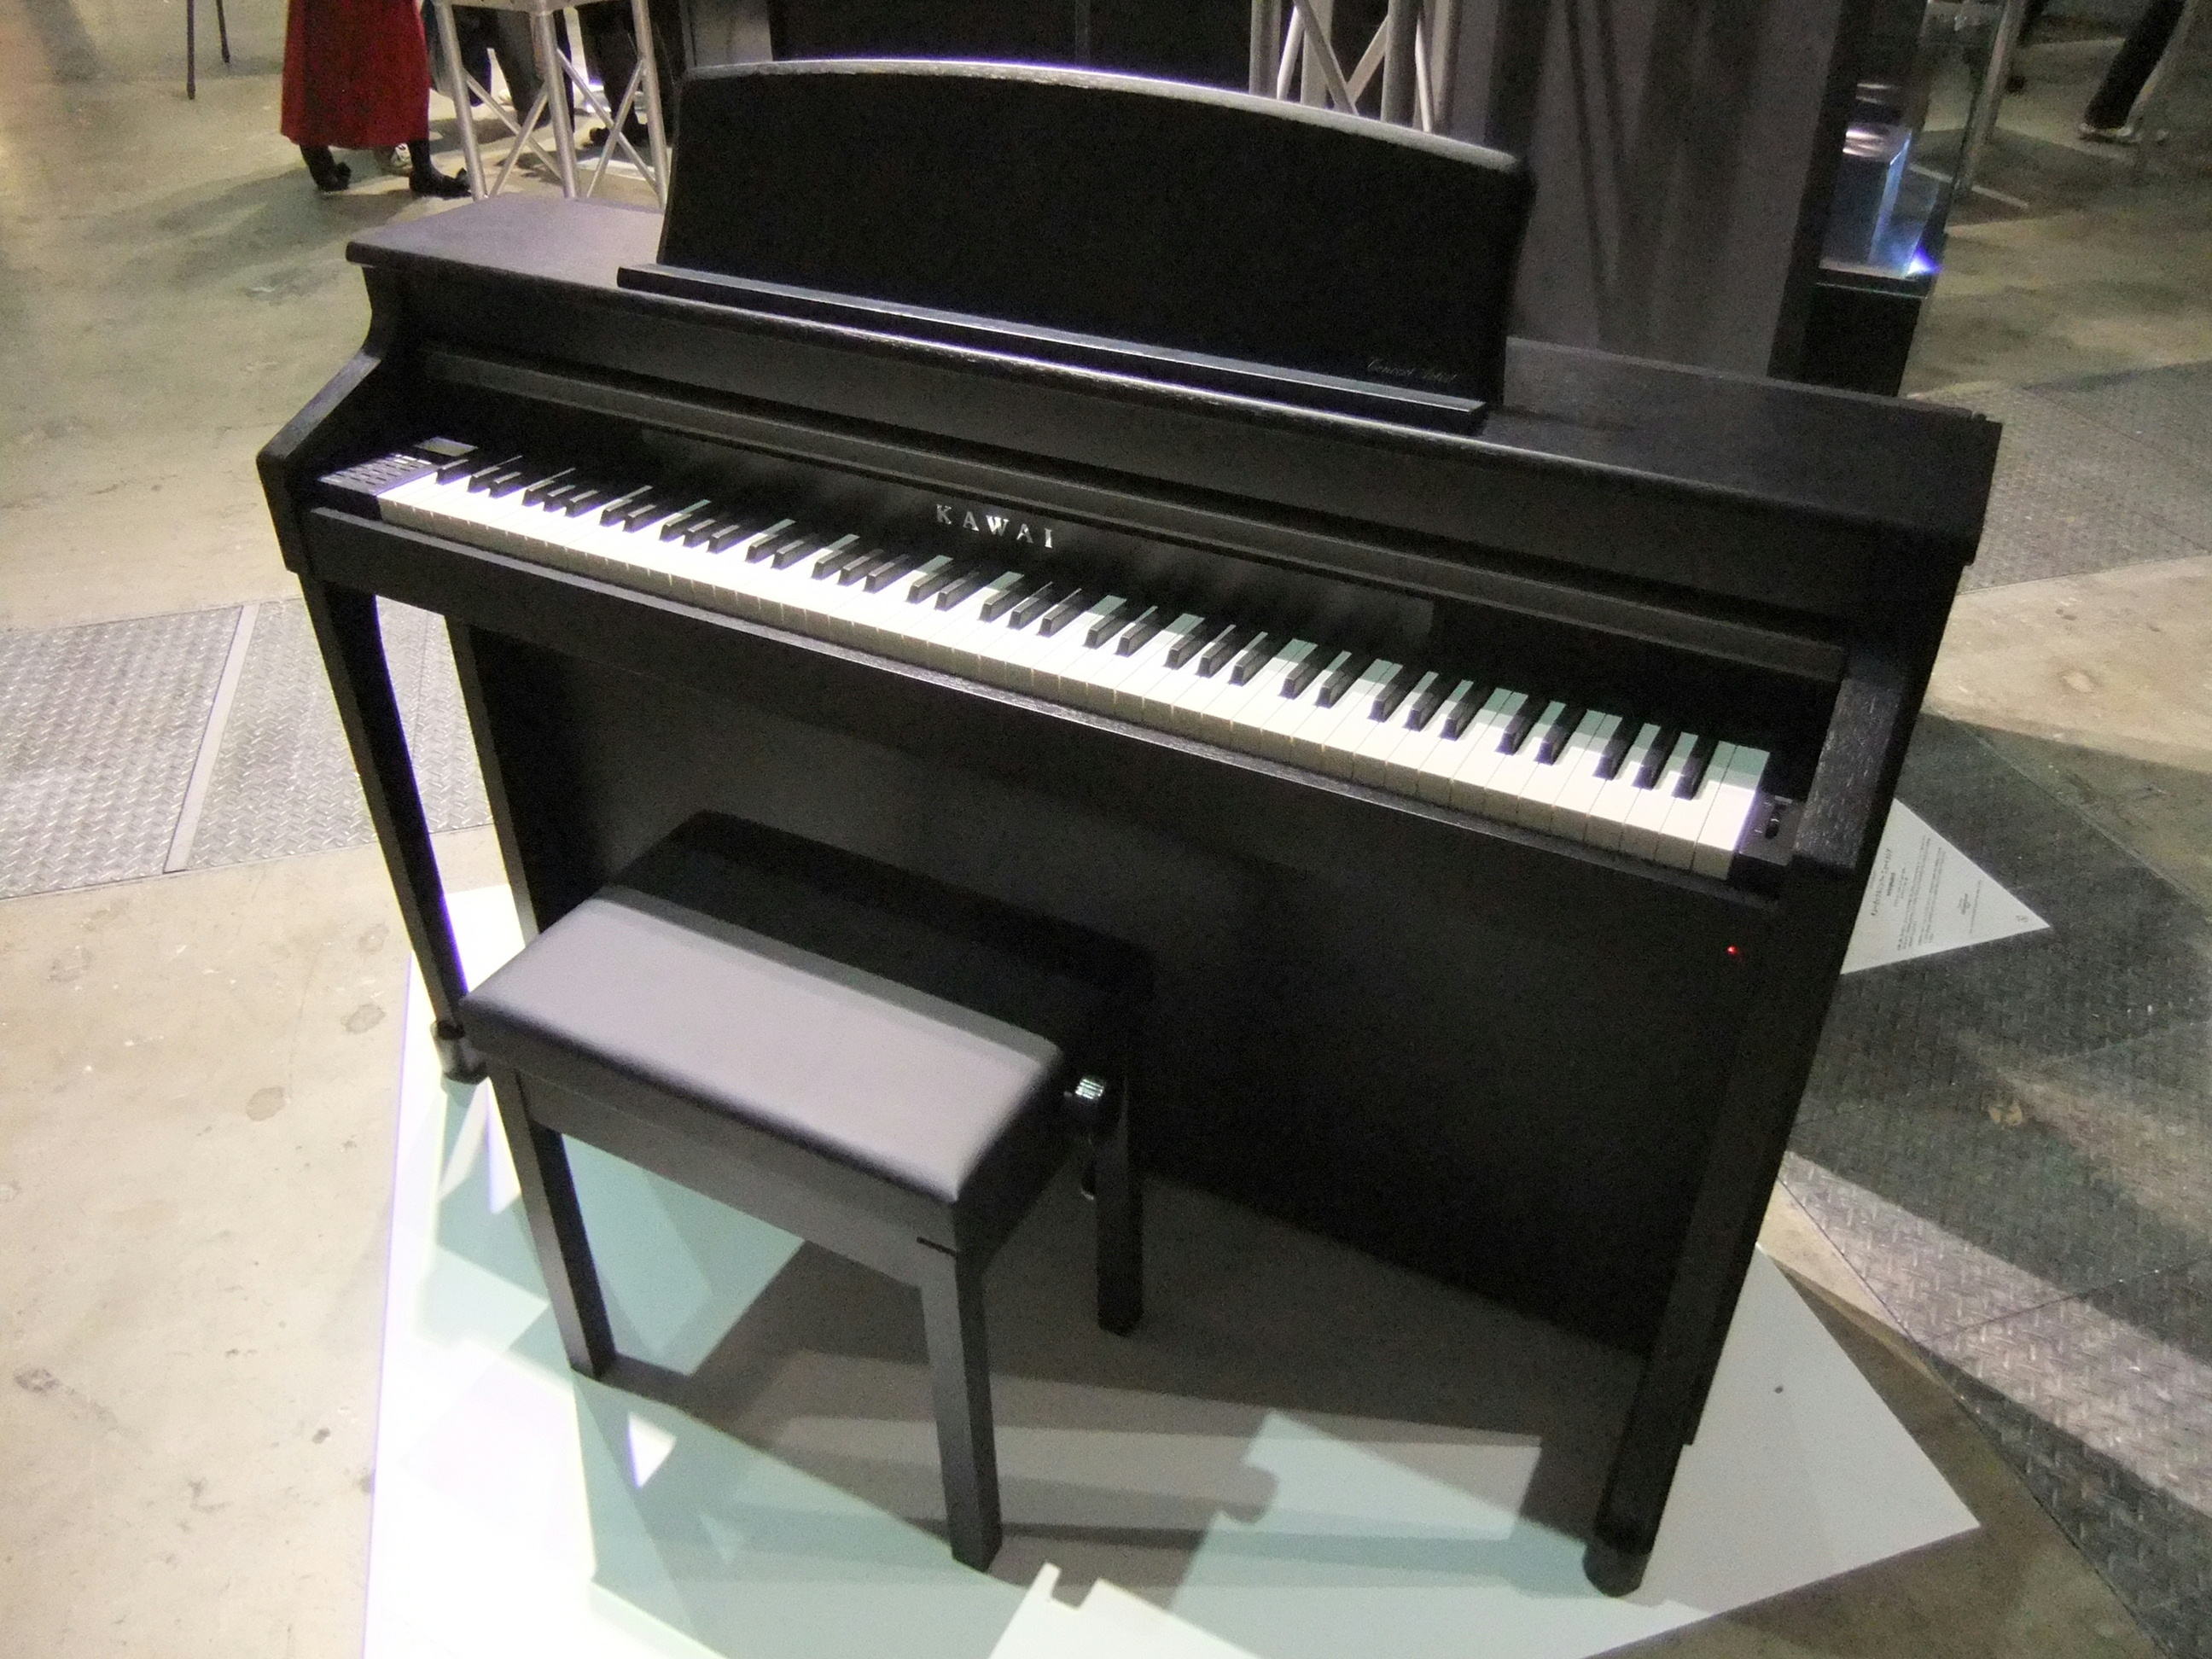 file kawai digital piano concert artist ca95 jpg wikimedia commons. Black Bedroom Furniture Sets. Home Design Ideas